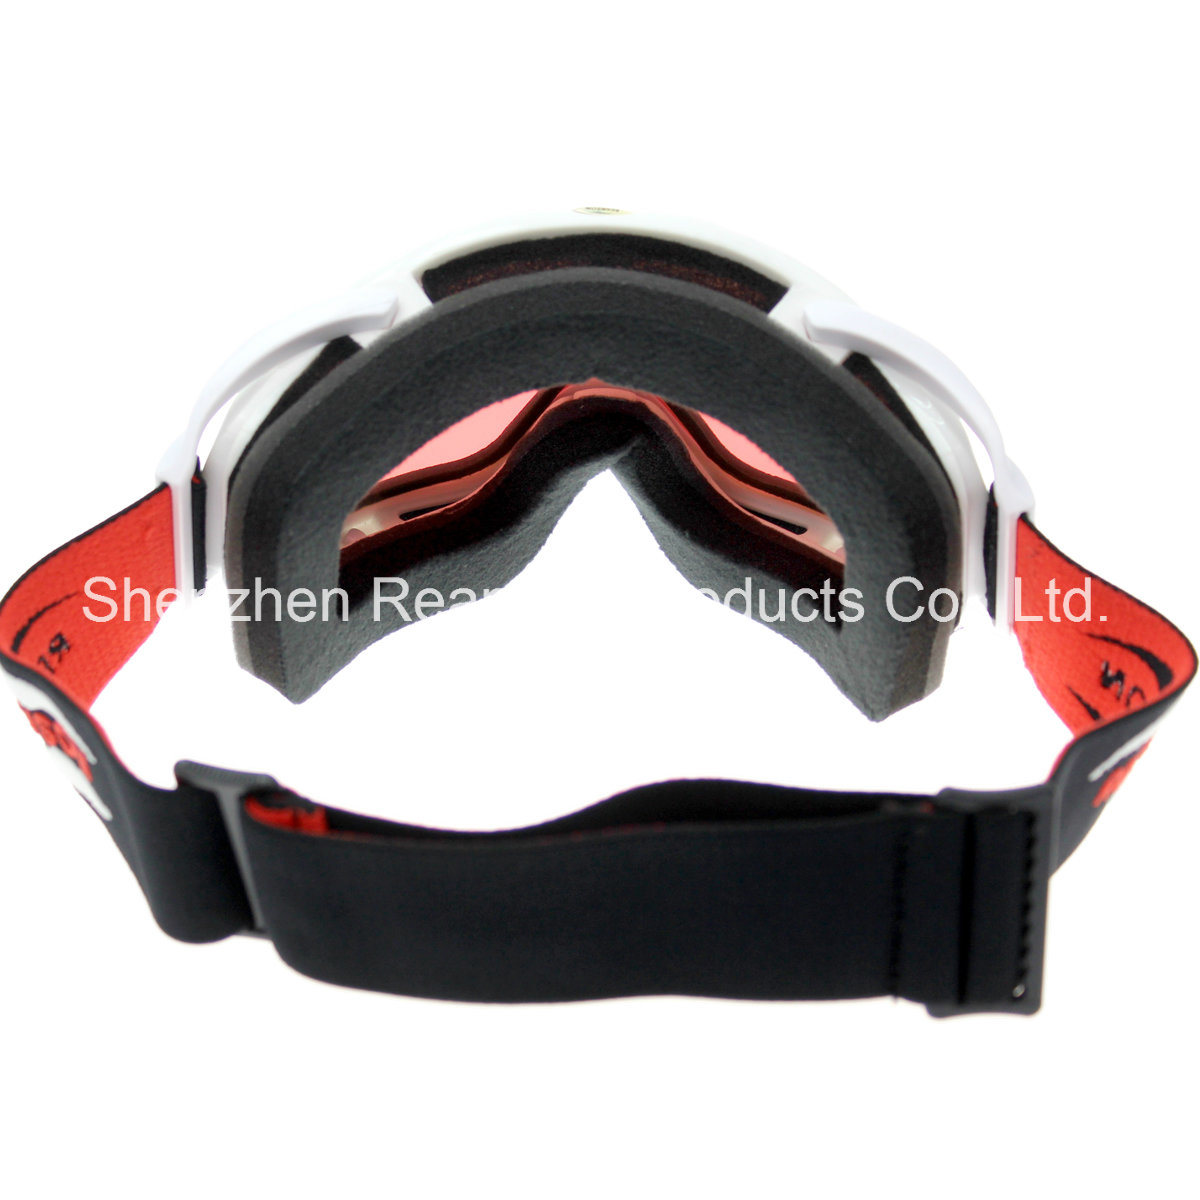 Reanson Anti-Fog UV Cut Double Lenses Snowboard Skiing Goggles